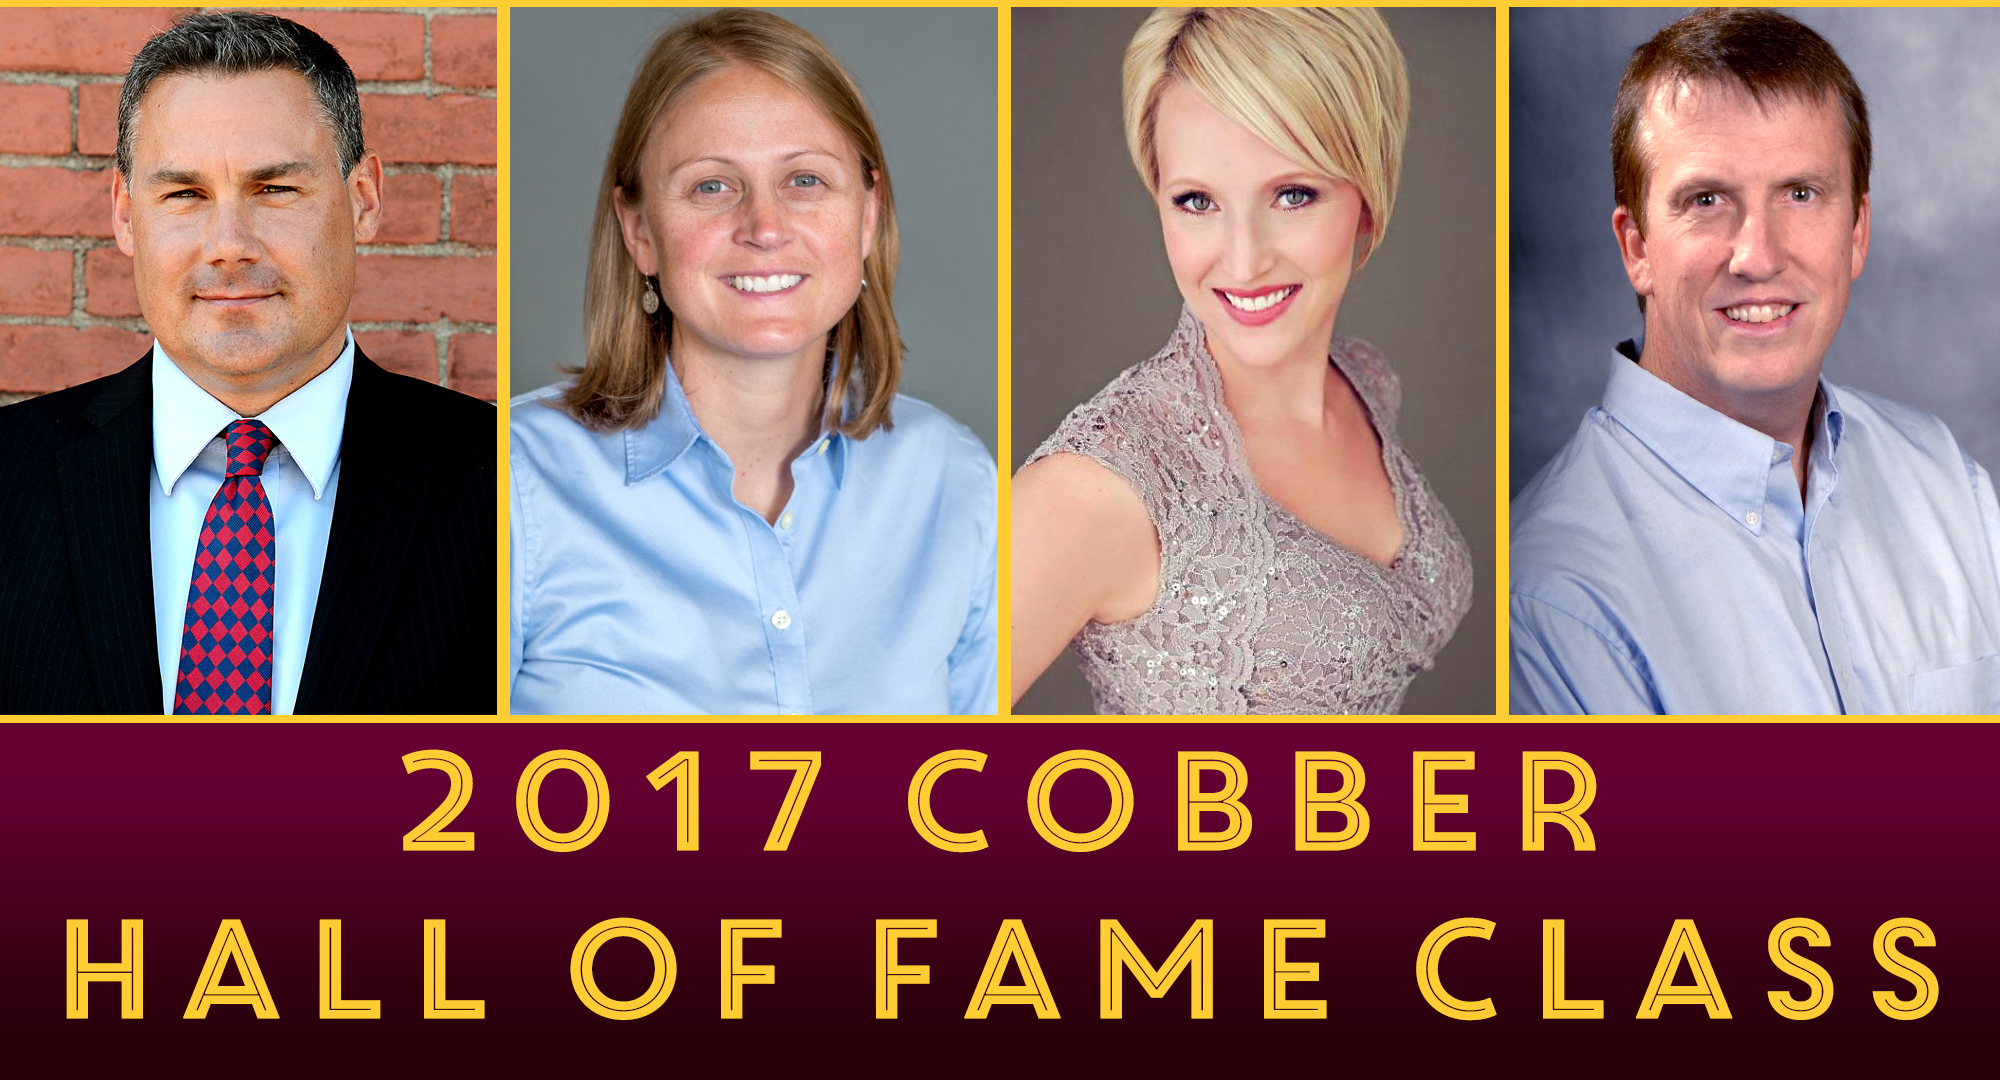 The 2017 Concordia Hall of Fame inductees are (L-R): Tory Langemo '97, Shana Letnes Erickson '01, Brandi (Myers) Rostad '02 and Jim Cella